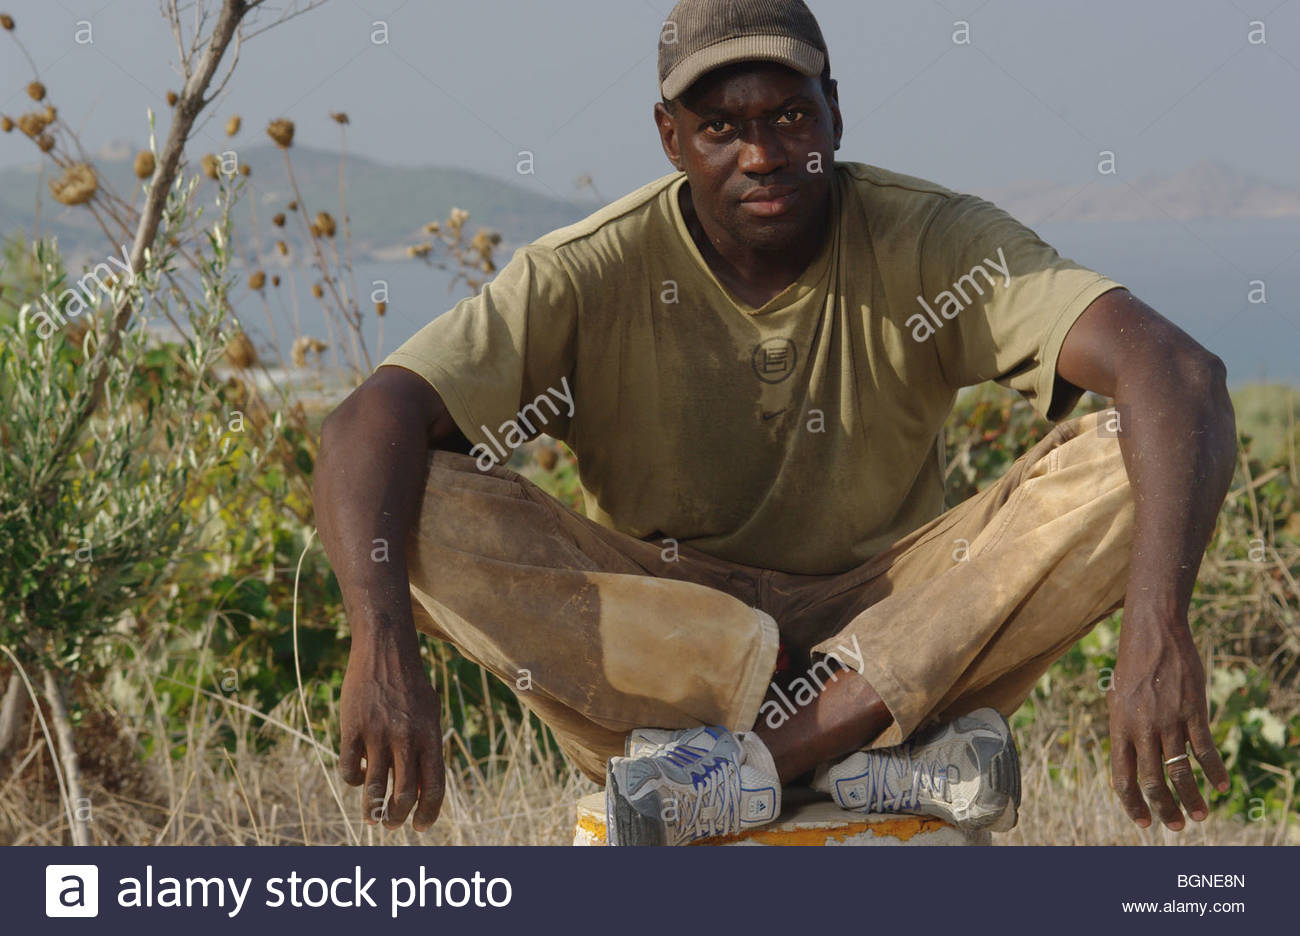 Izza, a 31 year old migrant worker from Senegal, Africa poses in Greece - asylum seekers - Stock Image